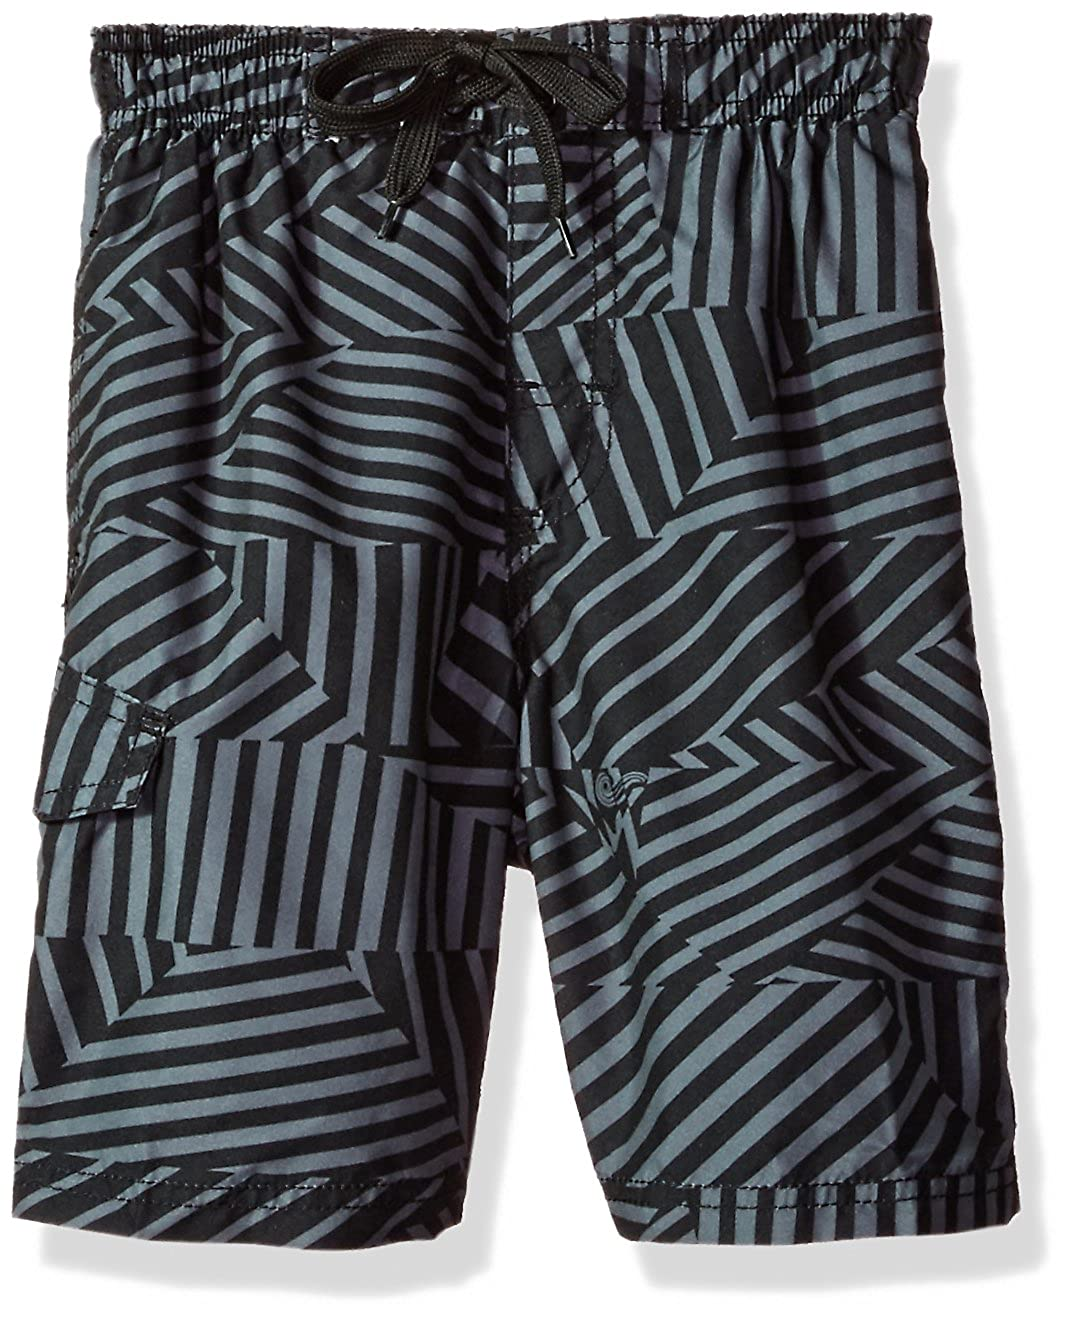 965bcab72b609 UPF 50+ quick dry microfiber: lightweight and durable for your most  comfortable pair of swim trunks. Side seam pockets and cargo pockets give  plenty of ...